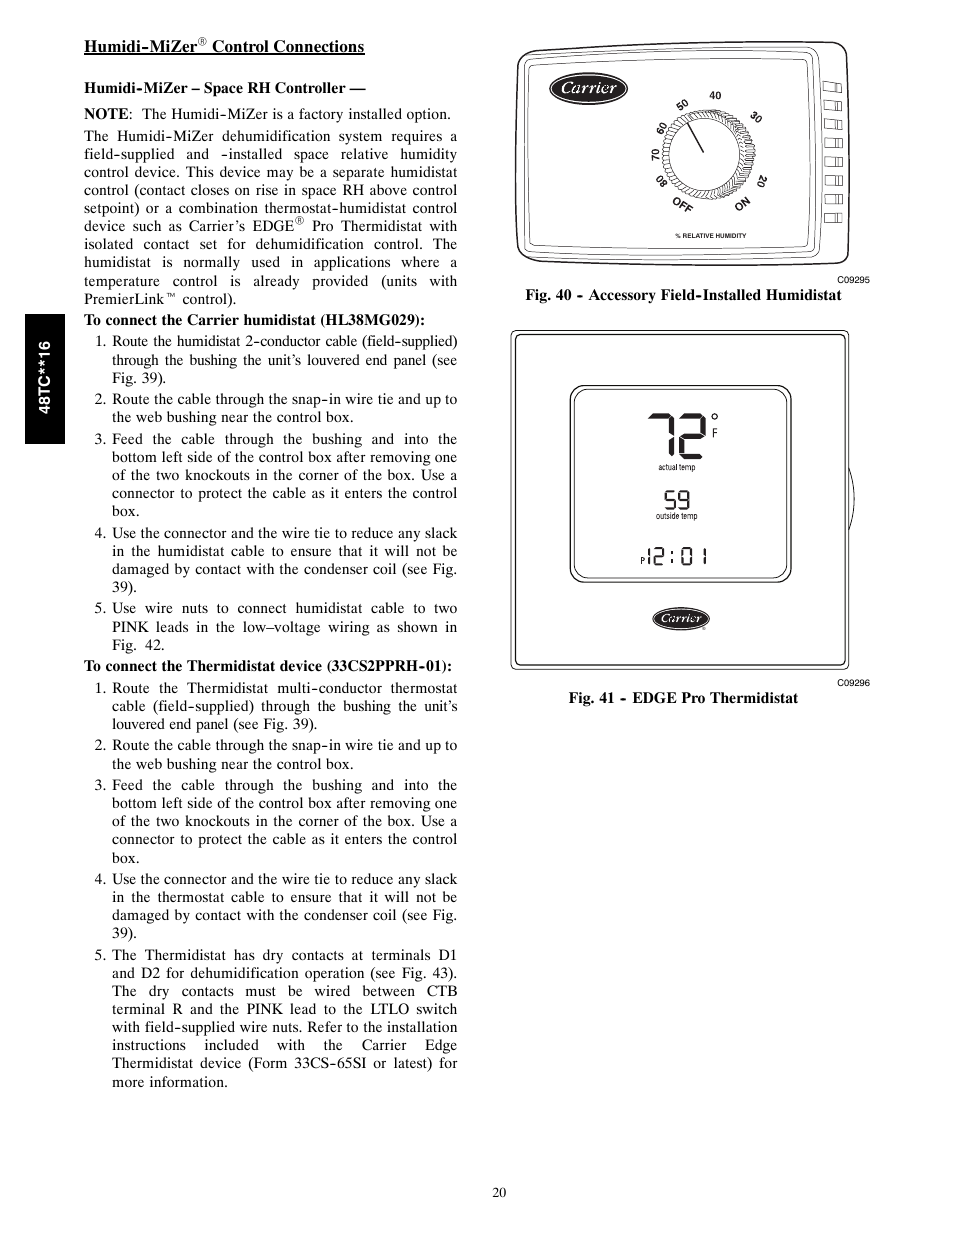 Carrier Thermidistat Owners Manual Online User Manual